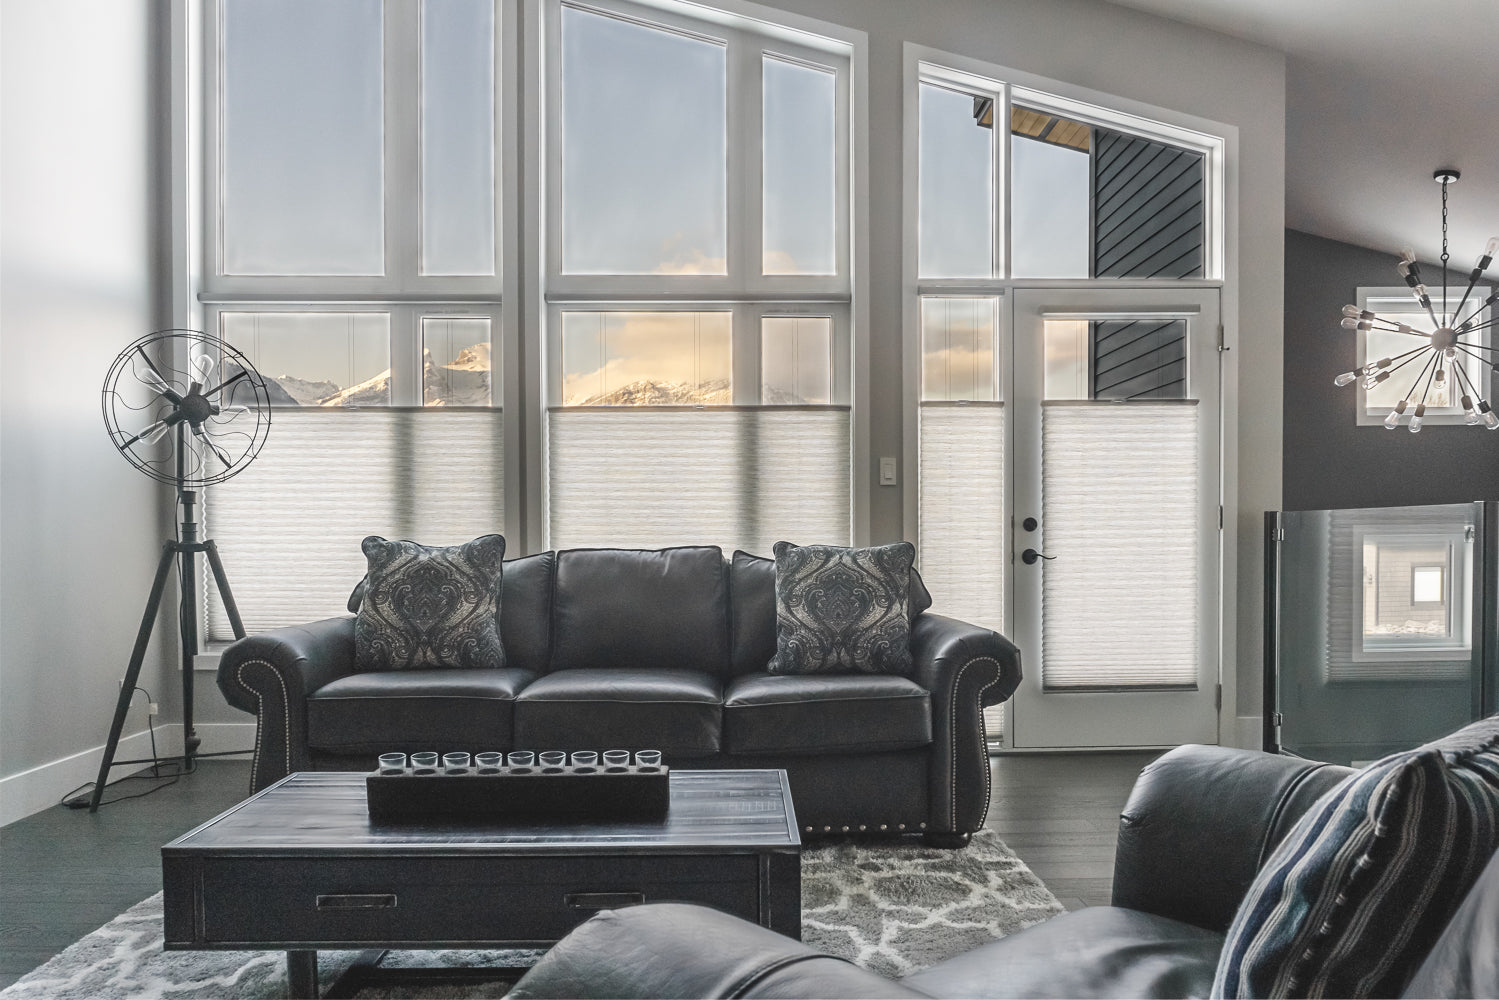 Living room scene in Fernie BC showing top down bottom up window shades and views of the Three Sisters rocky mountains.